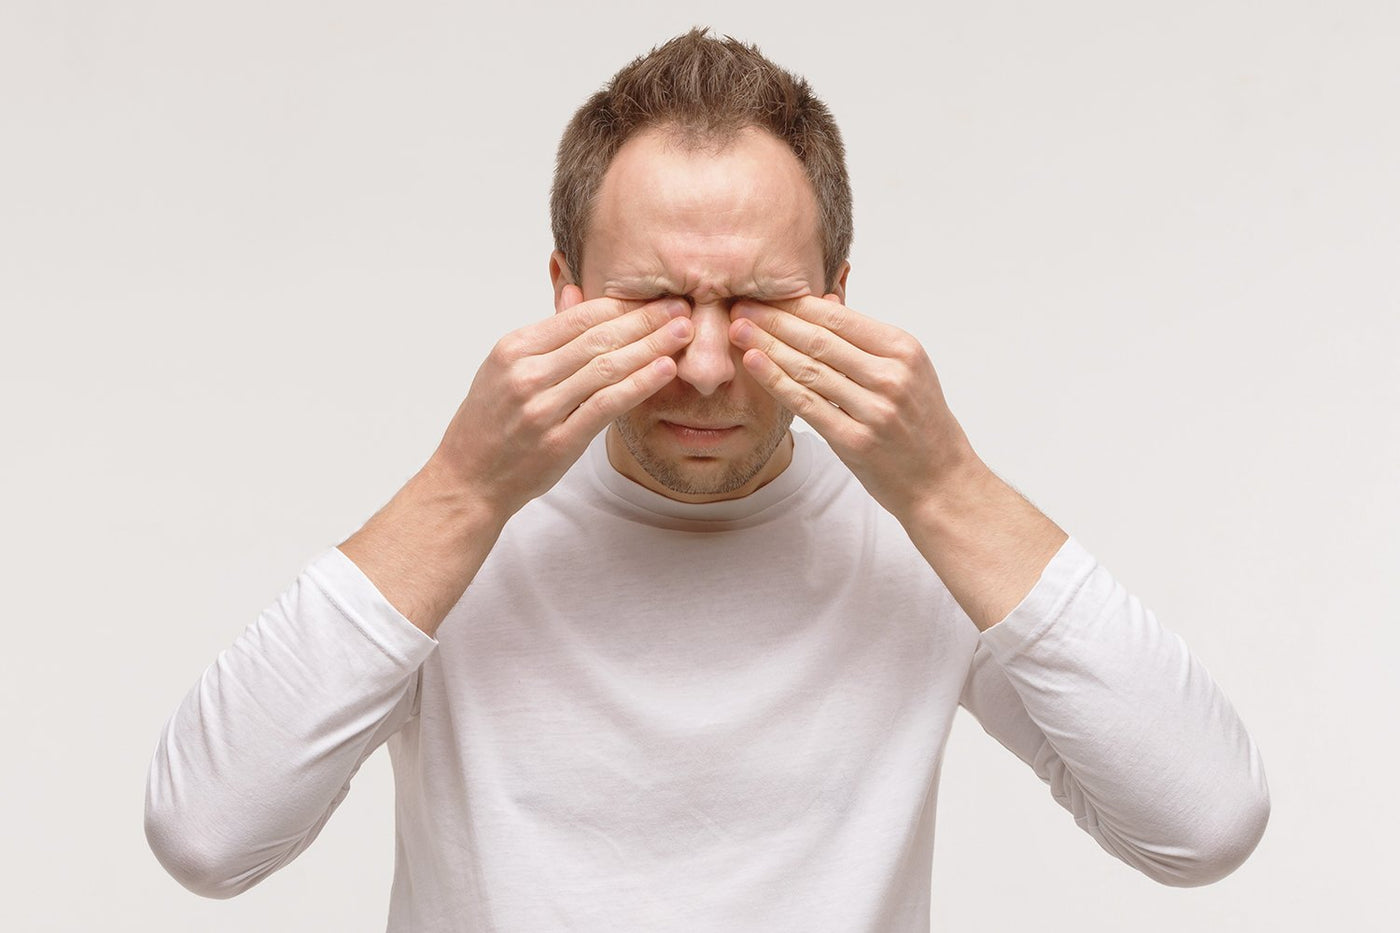 10 Eye Symptoms You Should Watch Out For - Vision Express Philippines